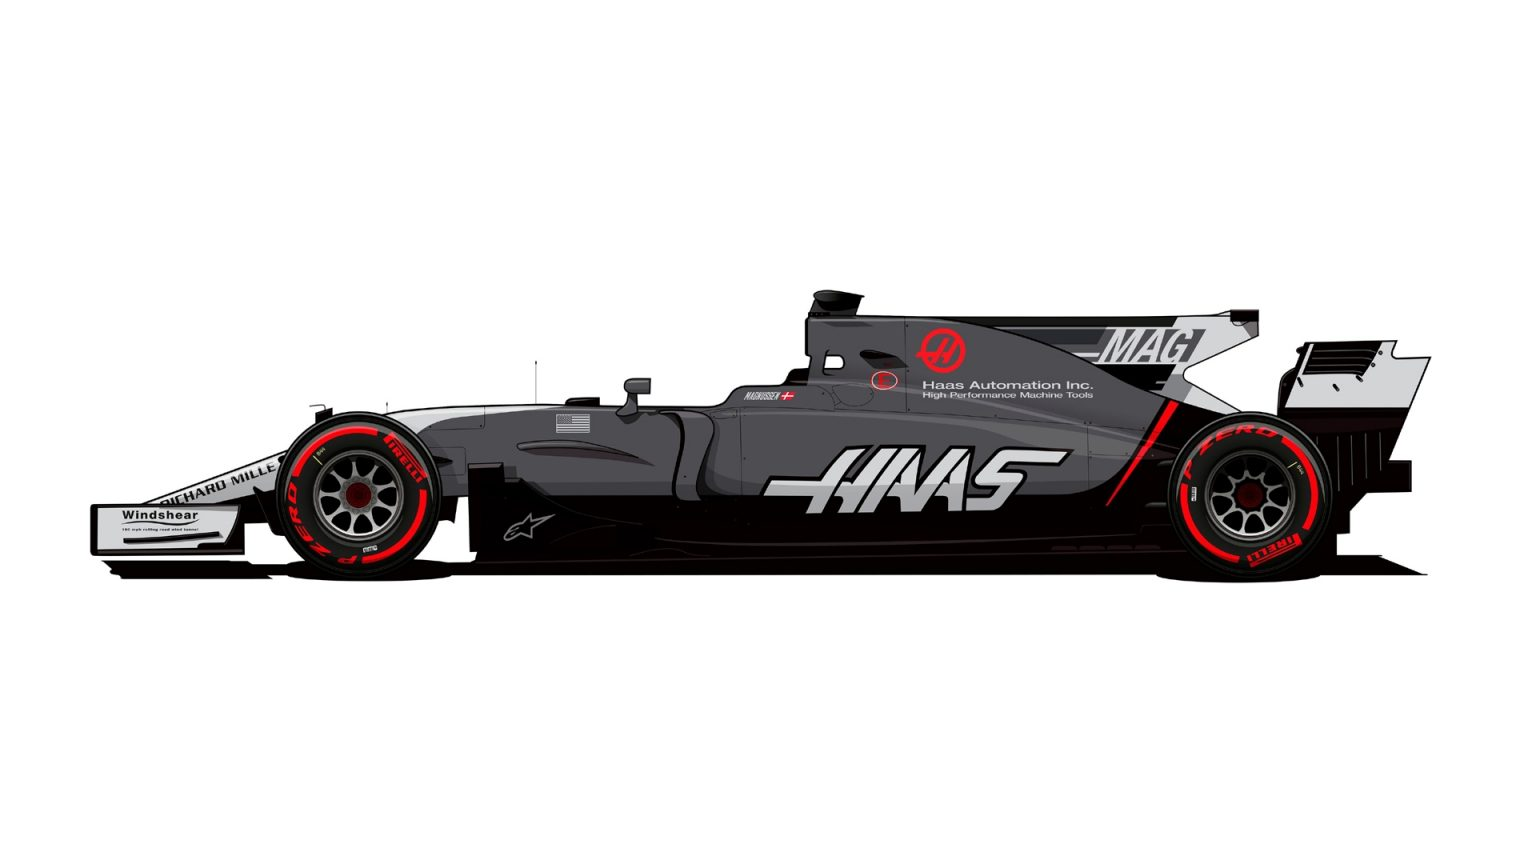 Haas F1 Revised Livery.jpg